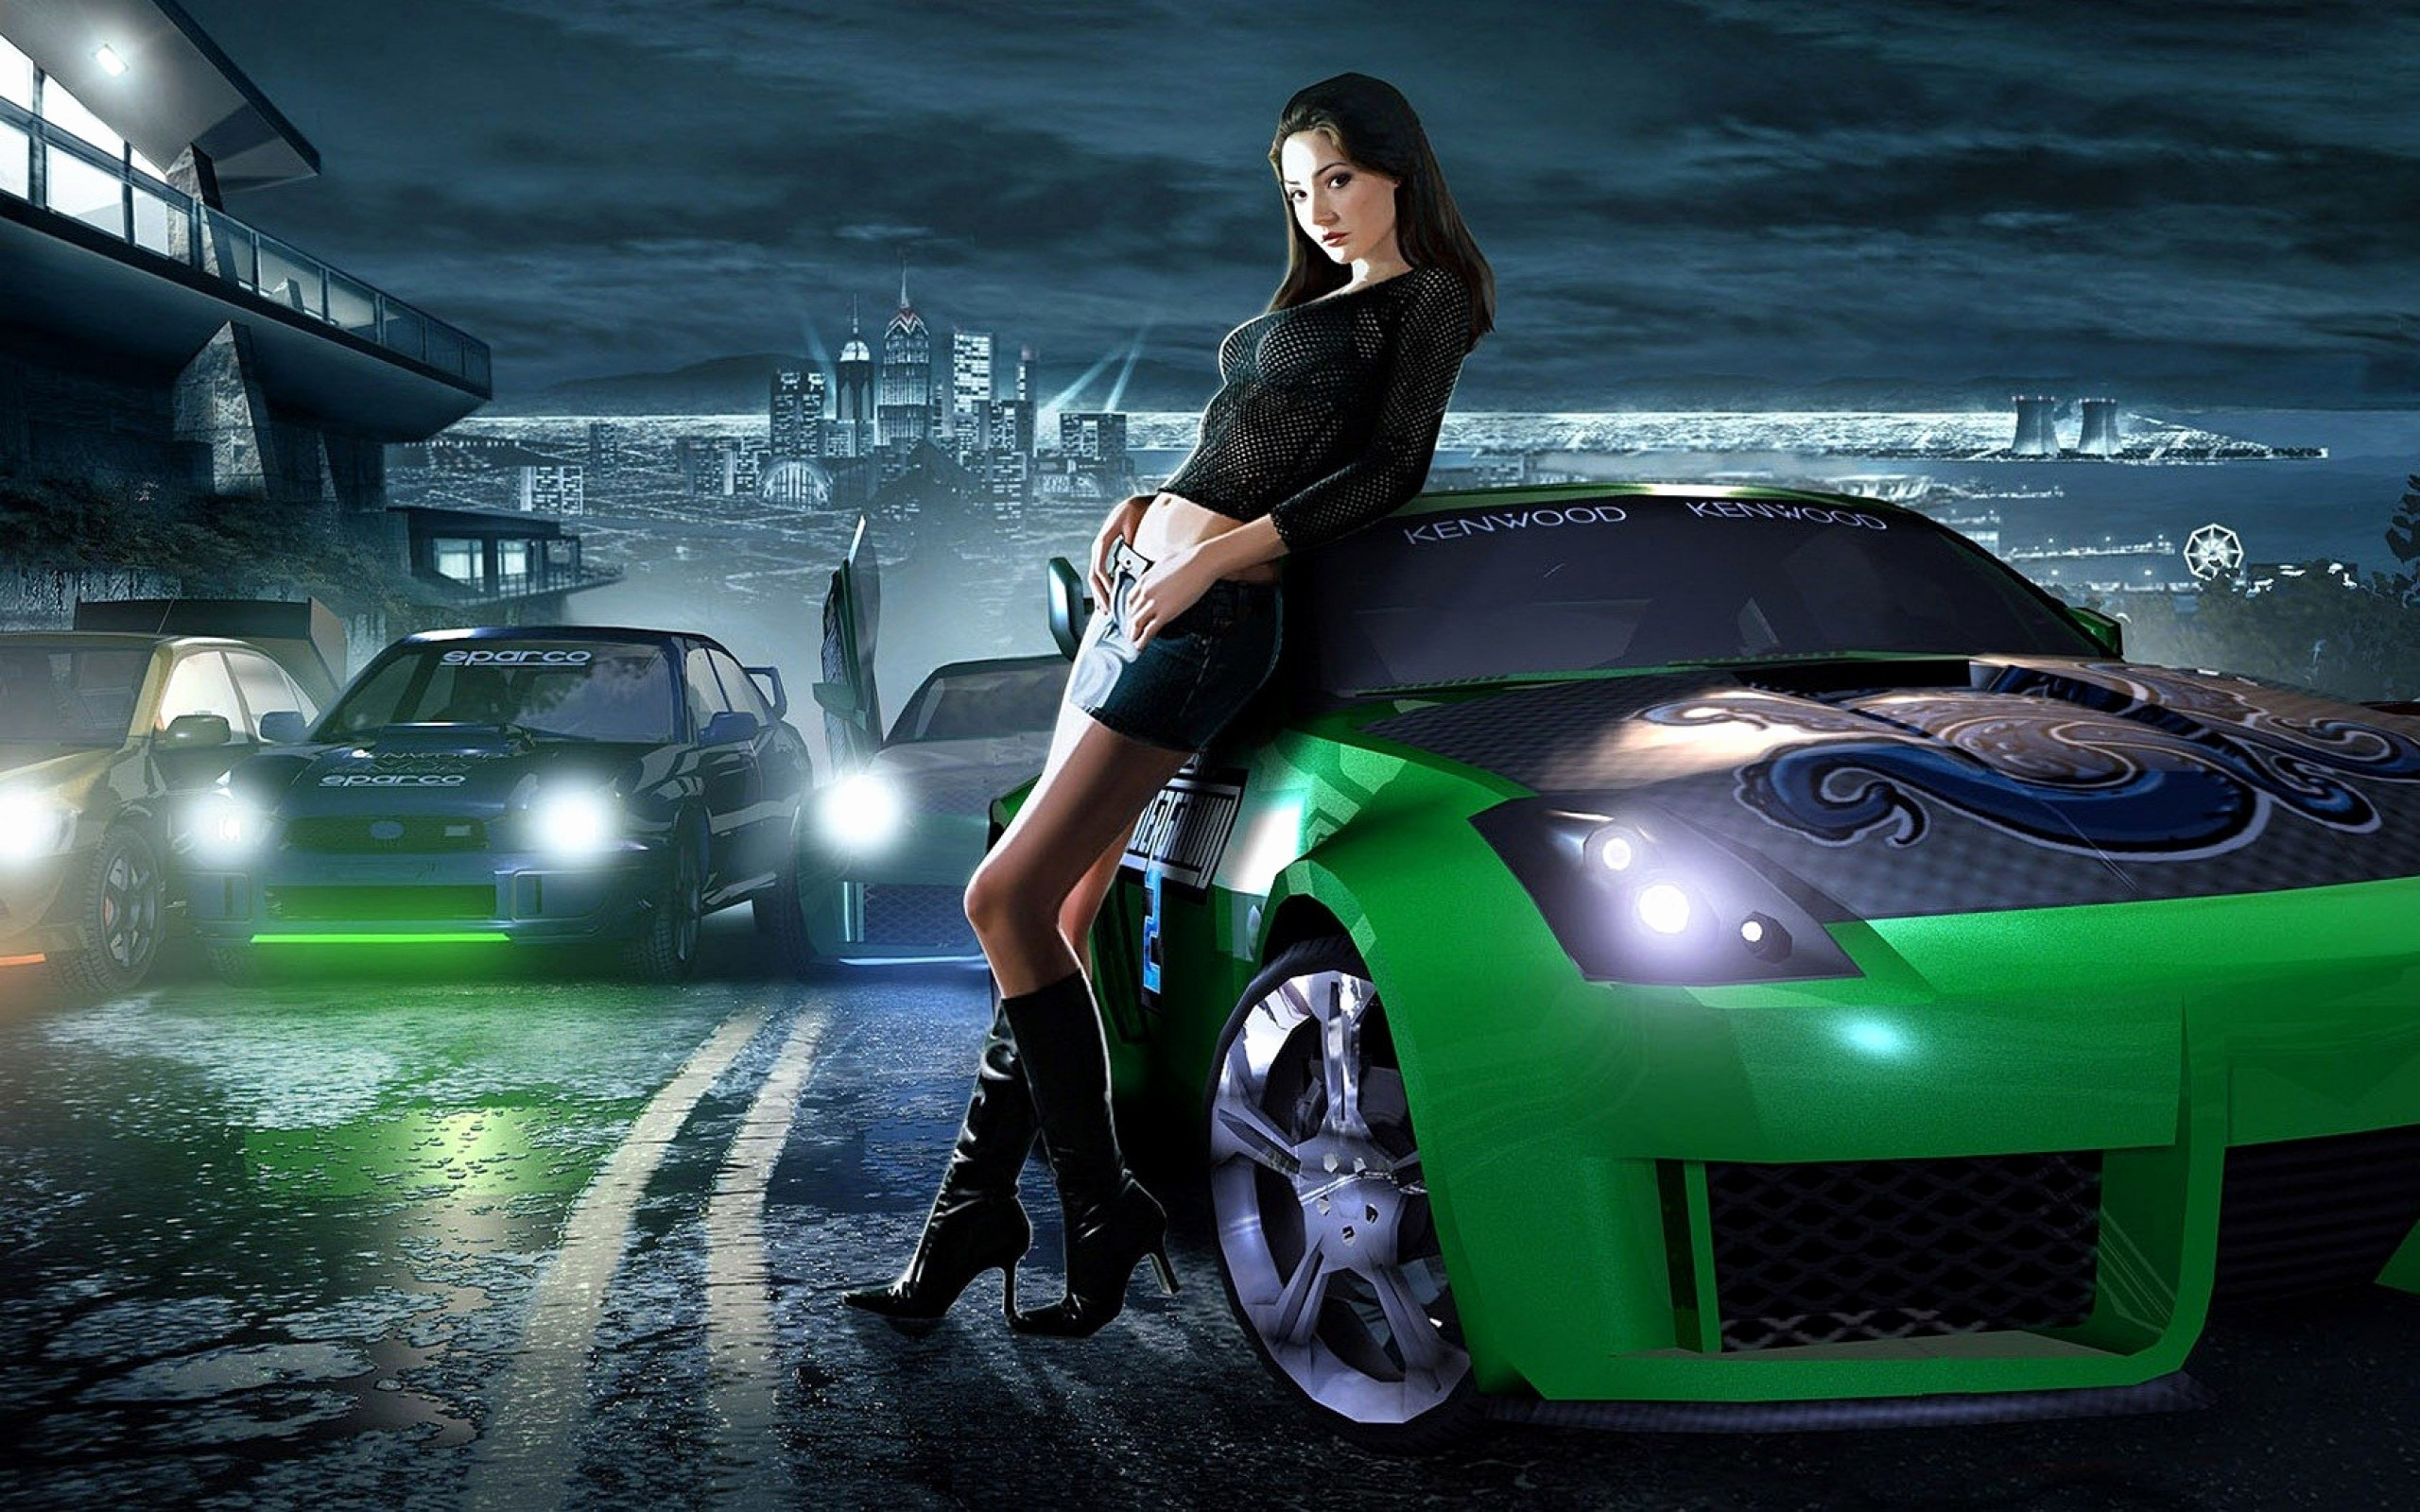 2560x1600 Need for Speed Car Wallpaper Luxury Need for Speed Wallpapers Need for Speed  Live Images Hd